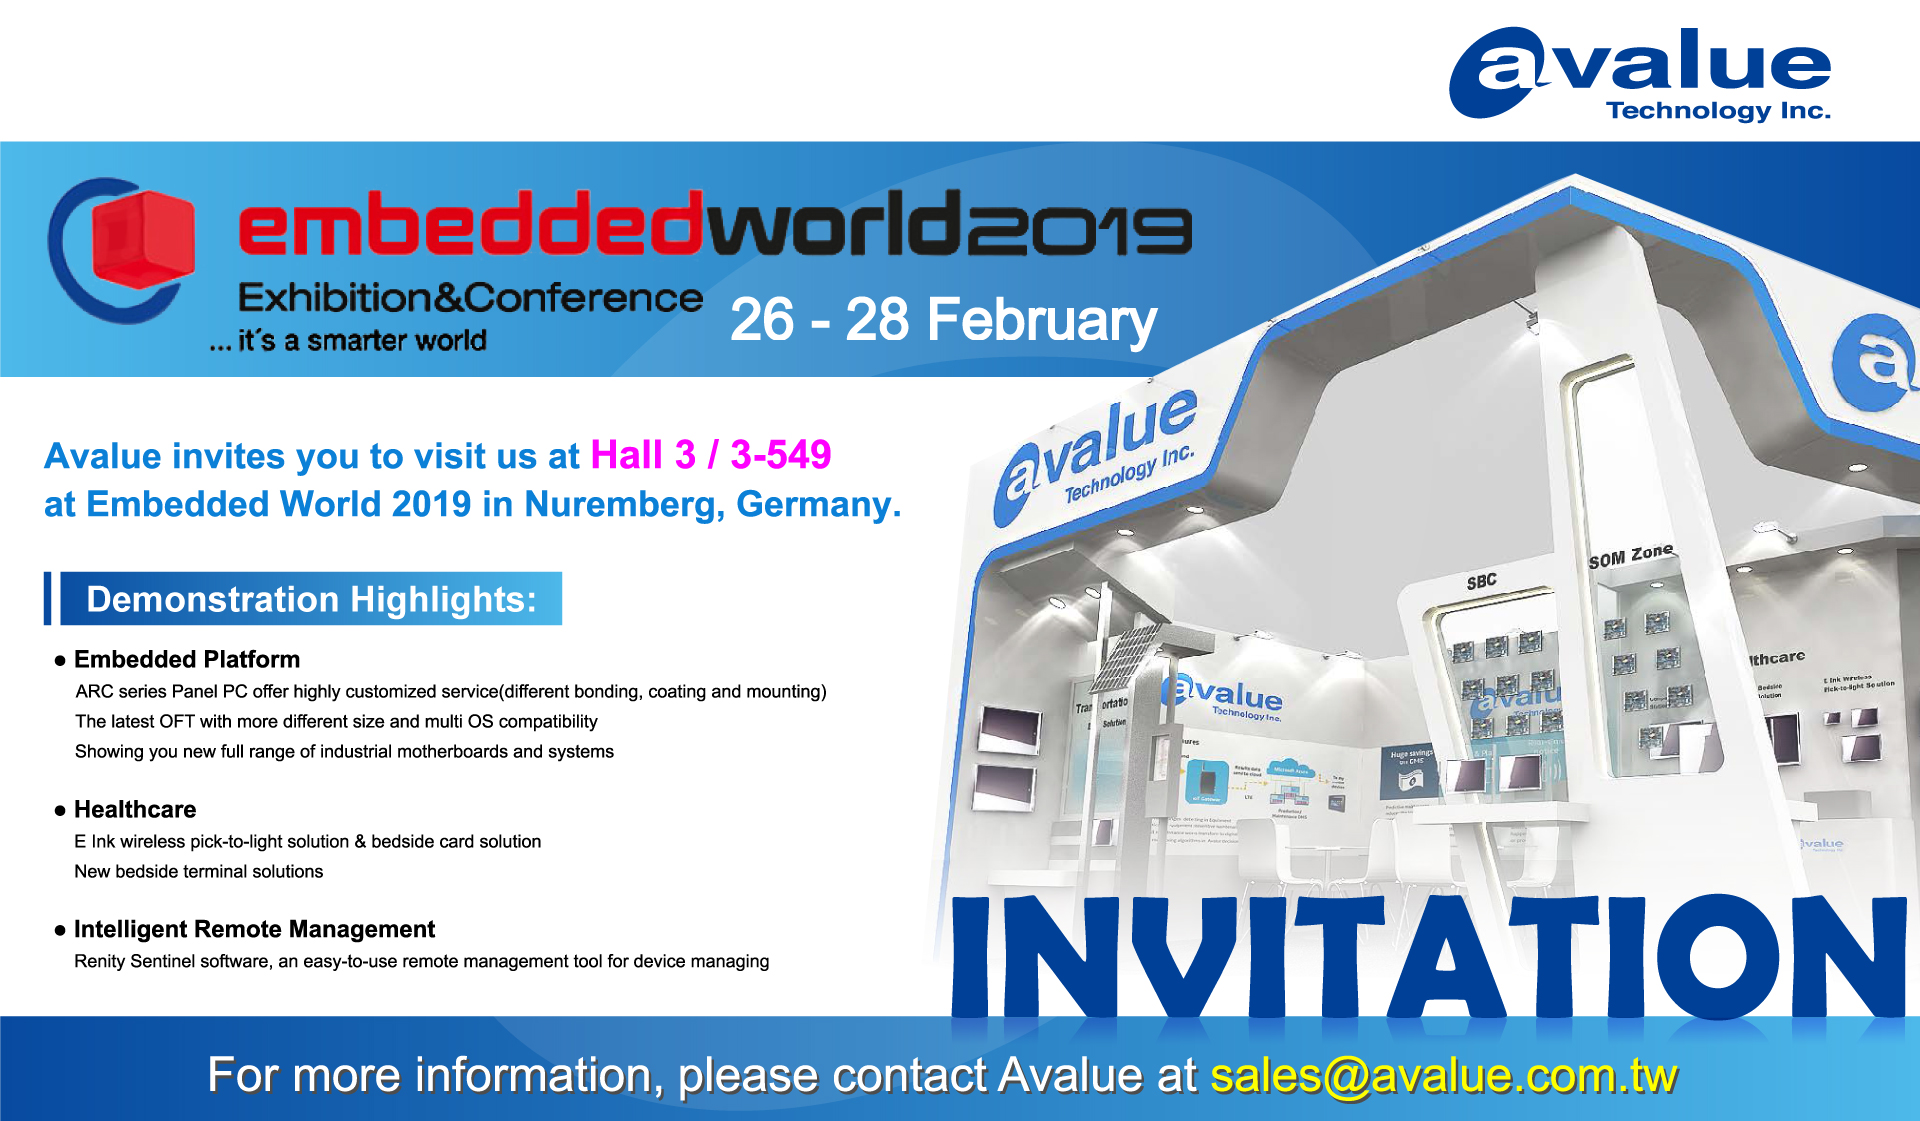 Embedded World 2019 - Avalue